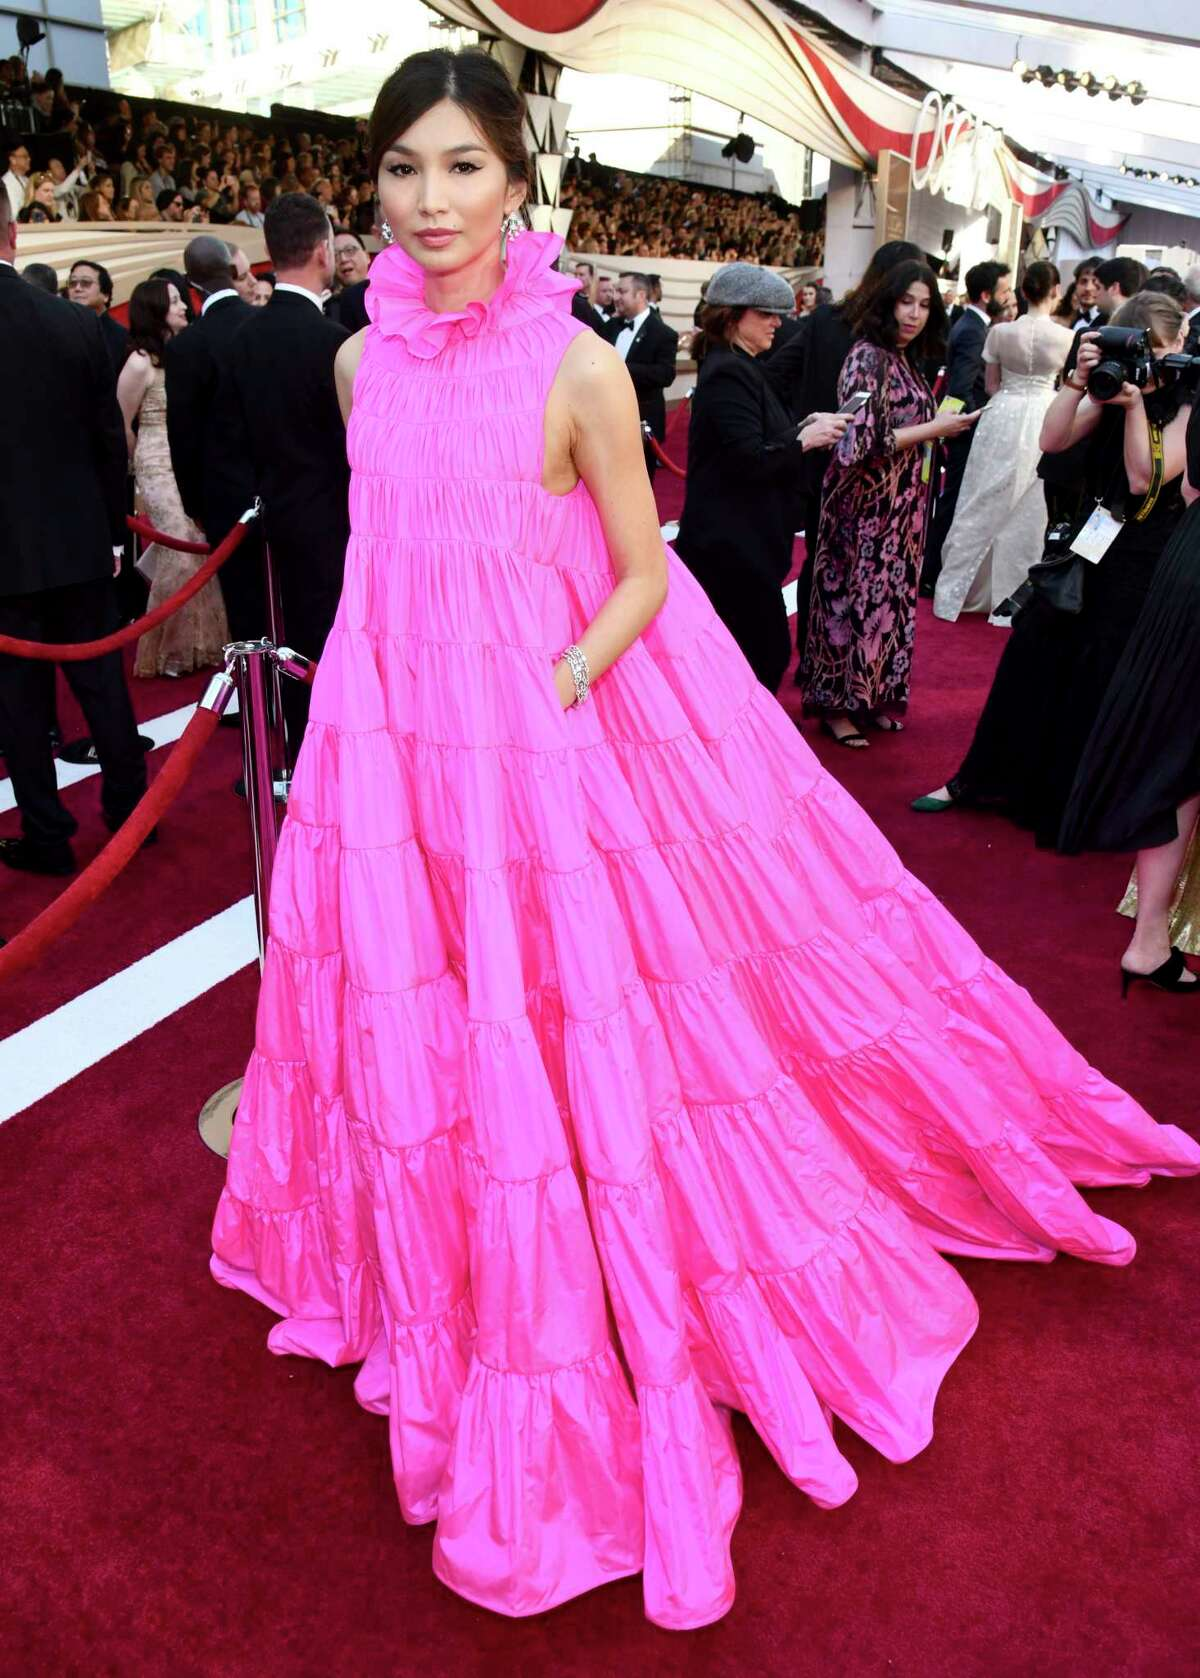 BEST: Gemma Chan flowed across the red carpet in a Valentino tiered dress with a ruffle collar and pockets.